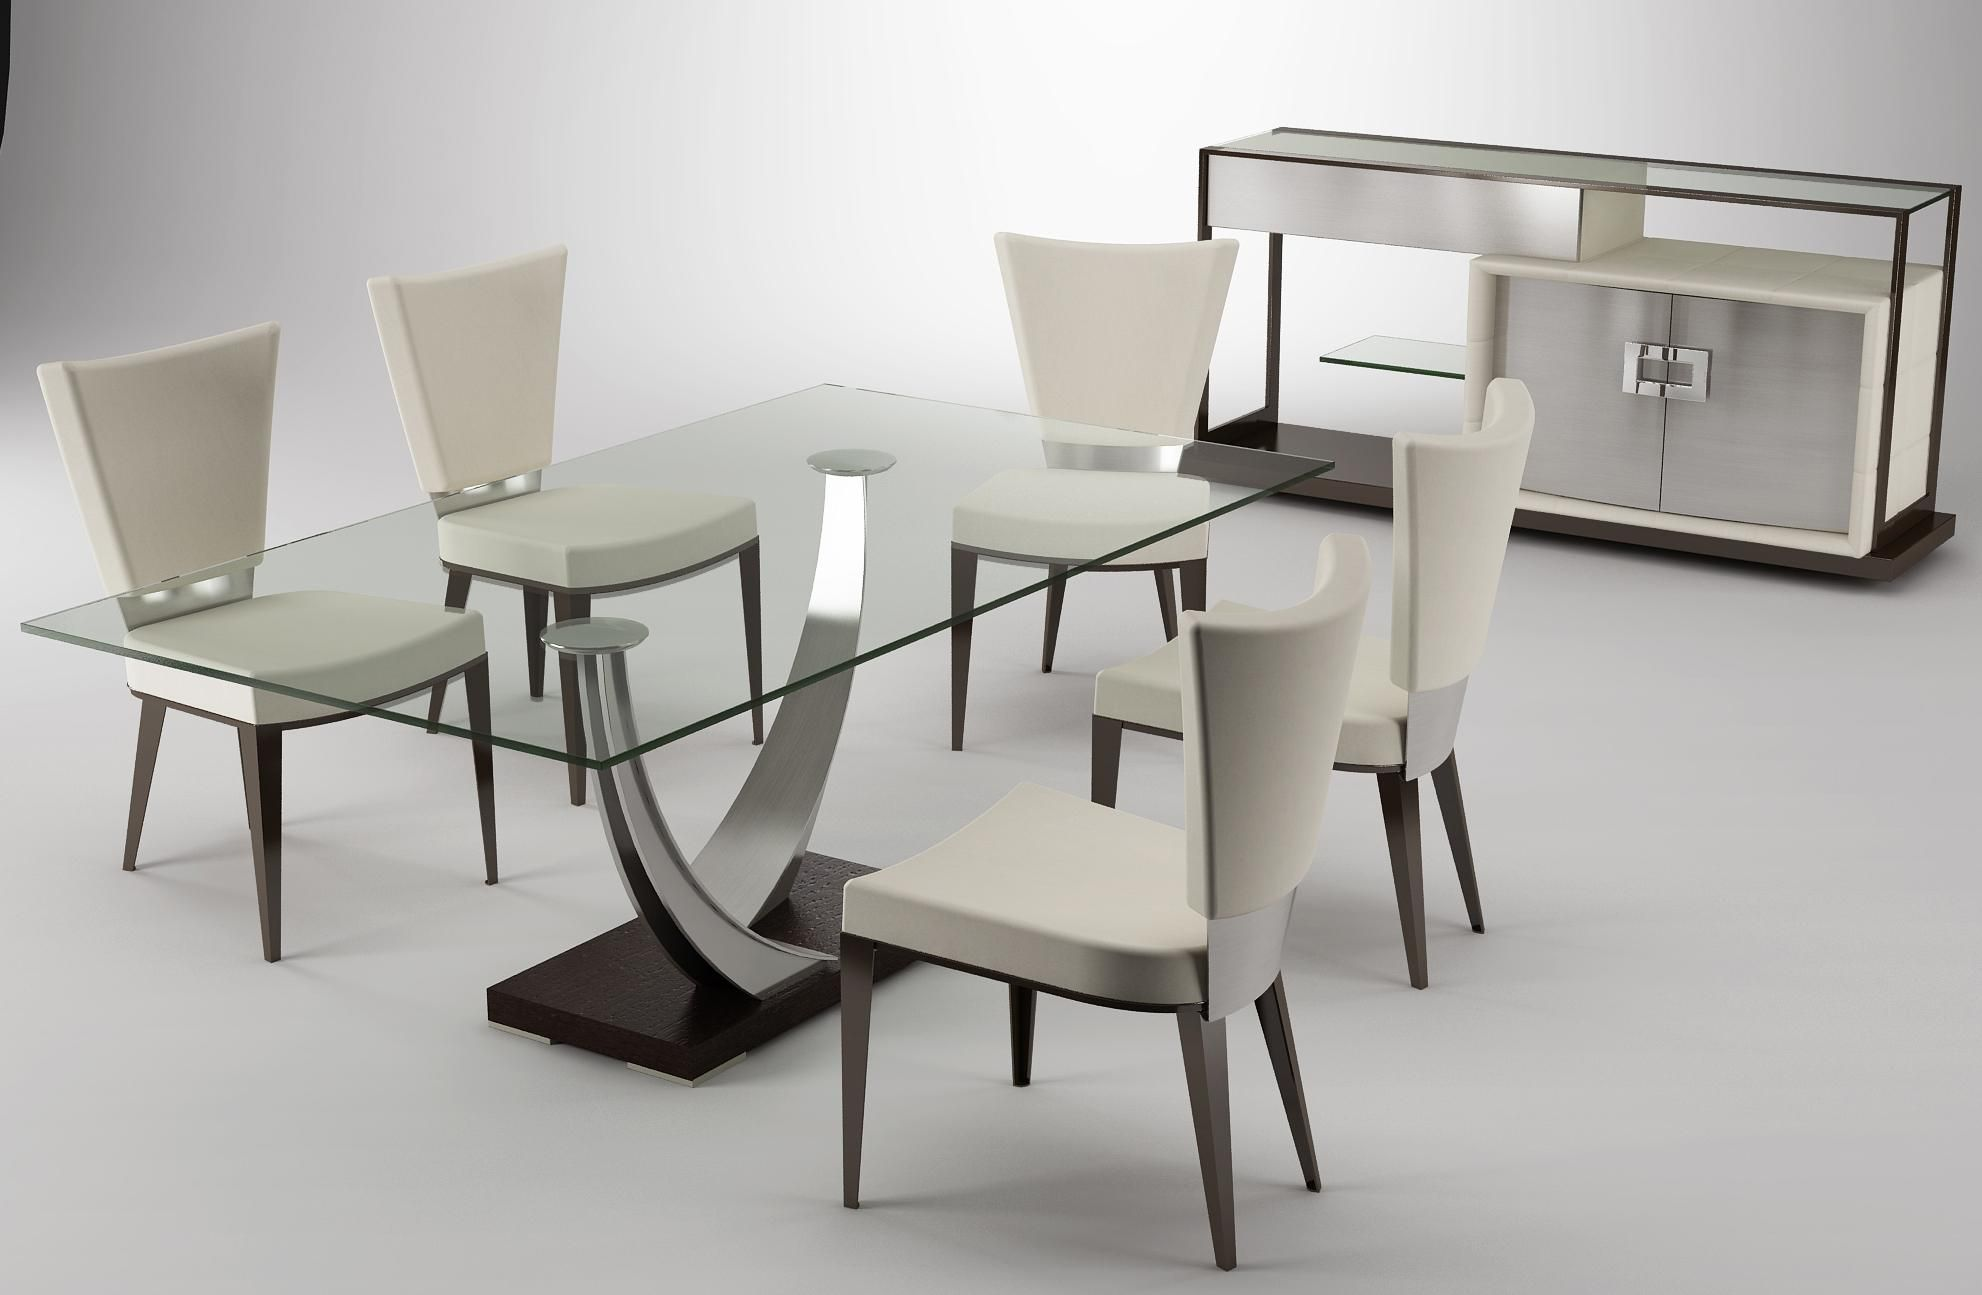 Amazing modern stylish dining room table set designs elite tangent glass top furniture stores - Designer glass dining tables ...